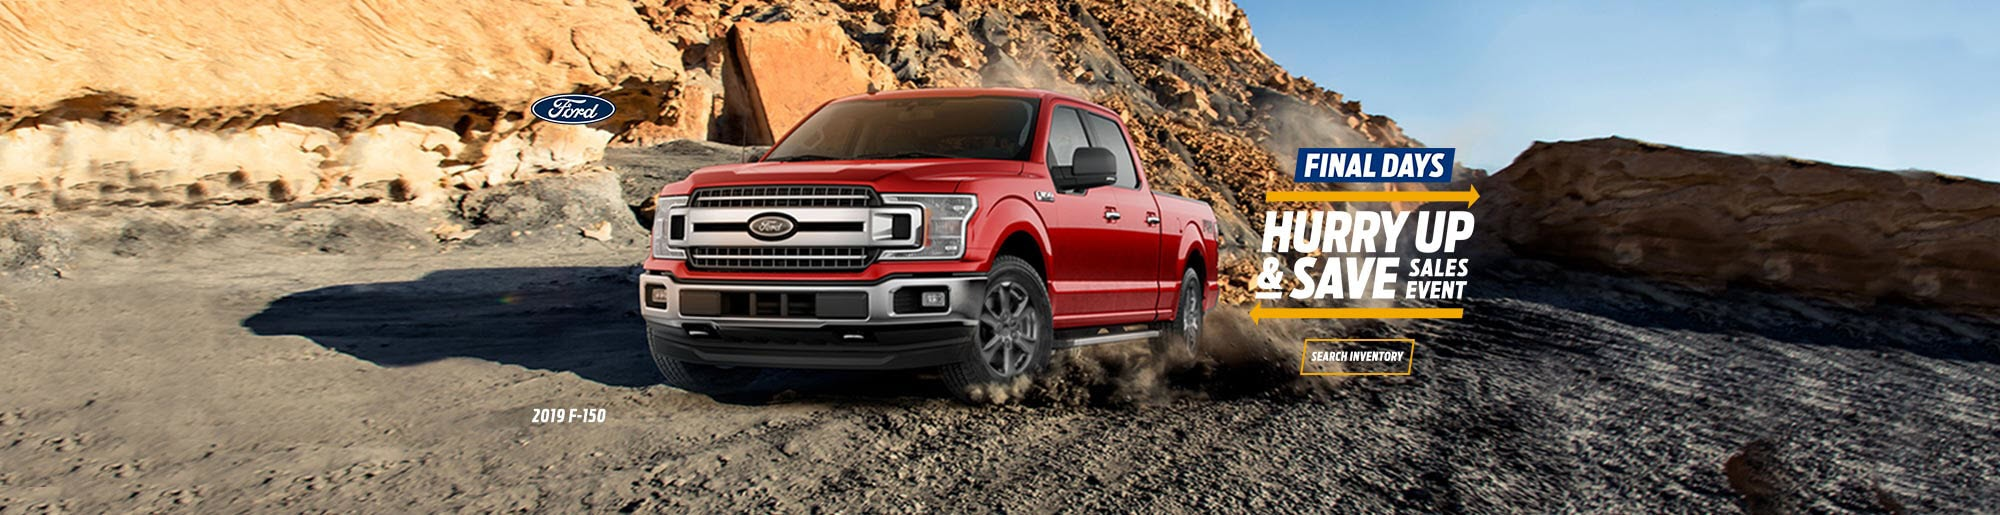 Sewell Ford Odessa >> New Ford Used Car Dealer In Odessa Tx Sewell Ford Near Midland